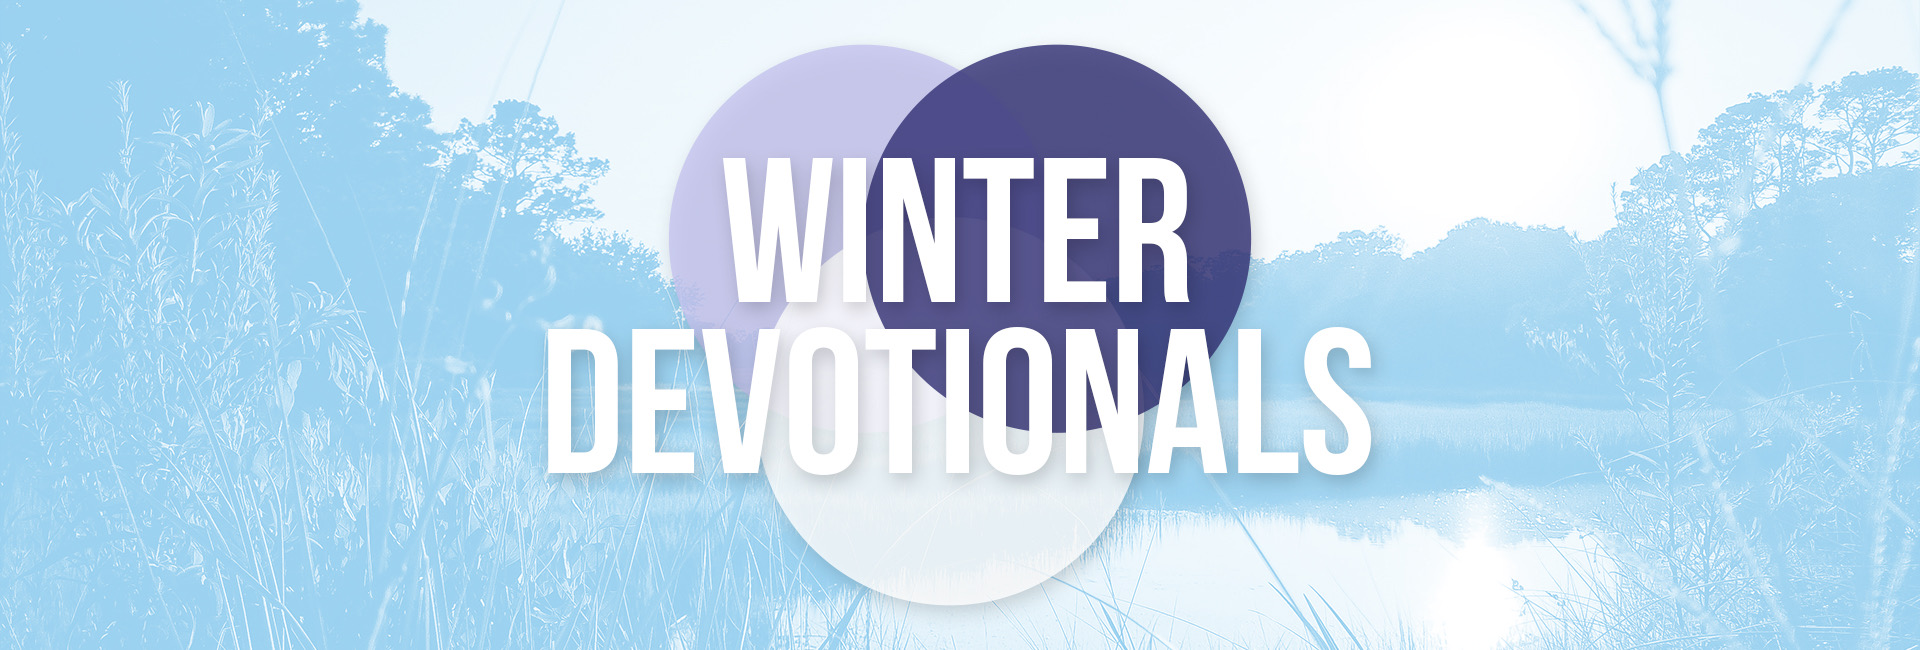 winter devotionals header